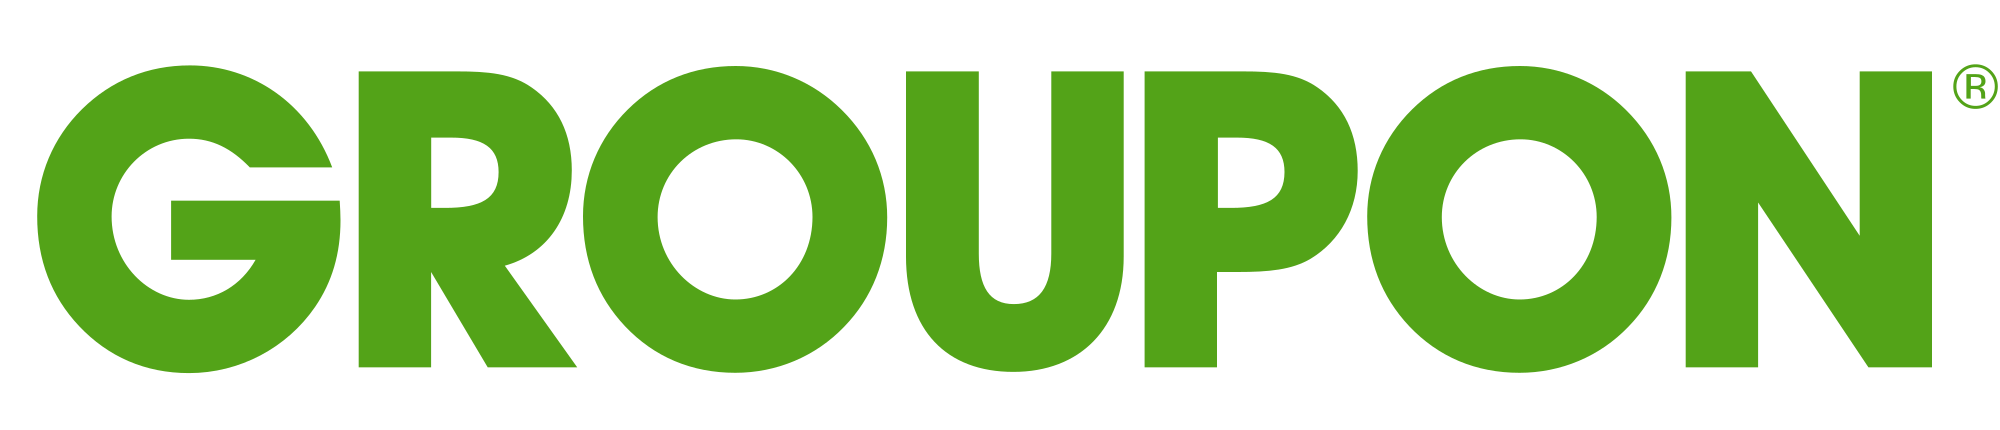 Groupon Logo - File:Groupon Logo.svg - Wikimedia Commons